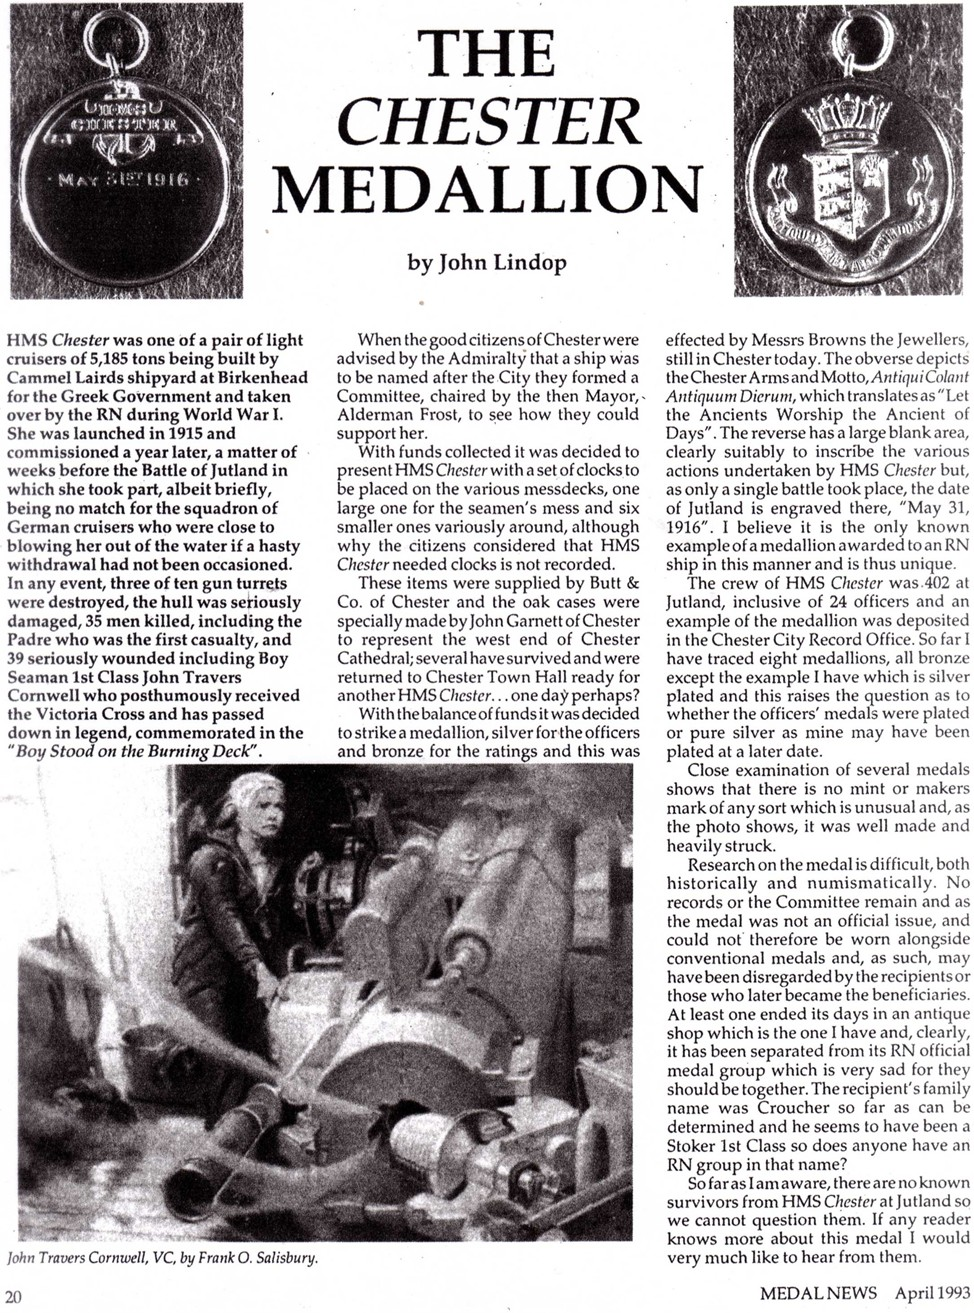 Chester Medallion Article by John Lindop